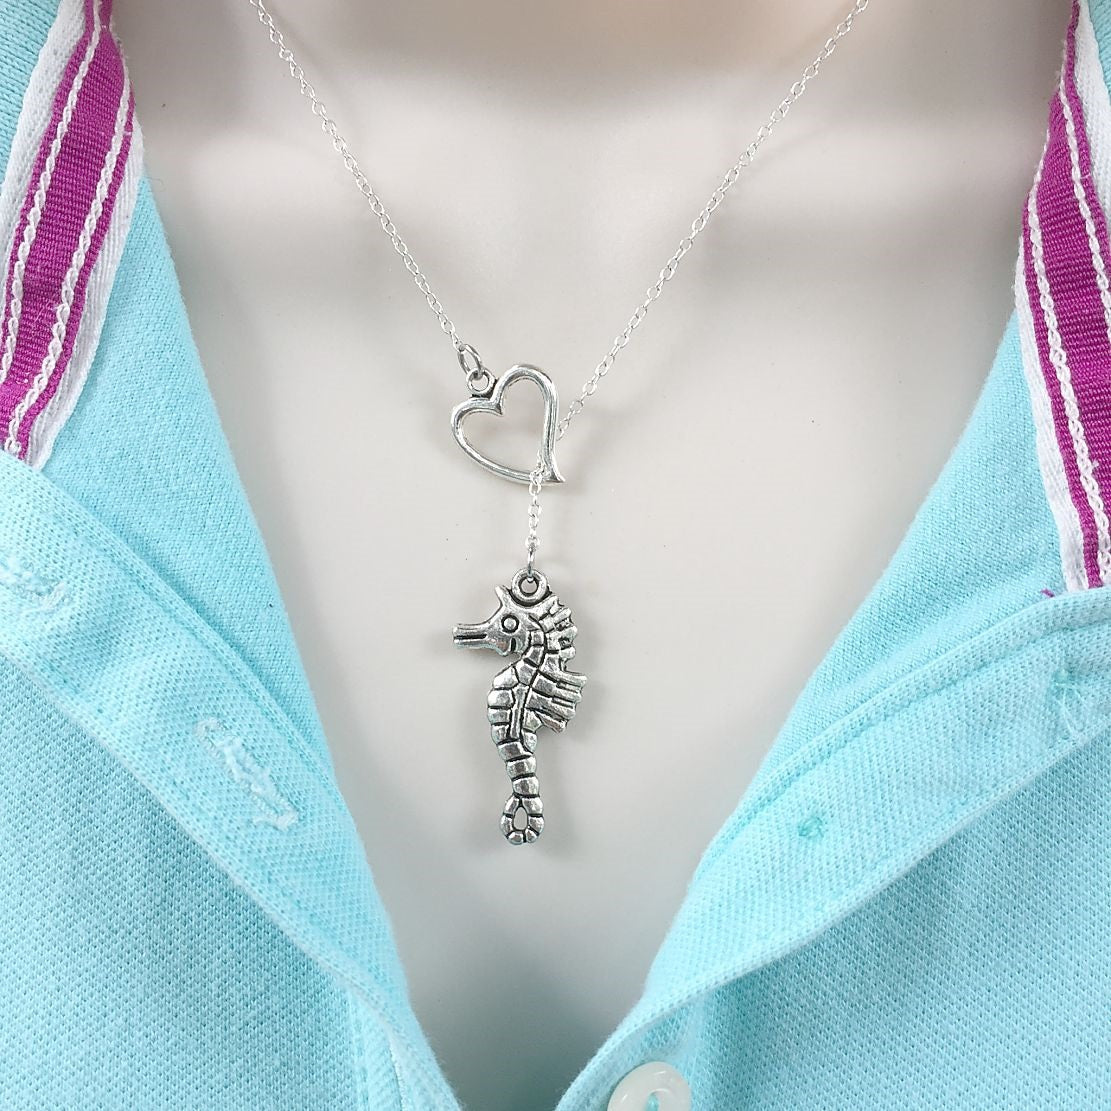 I Love Sea Horse Handcrafted Silver Lariat Y Necklace.